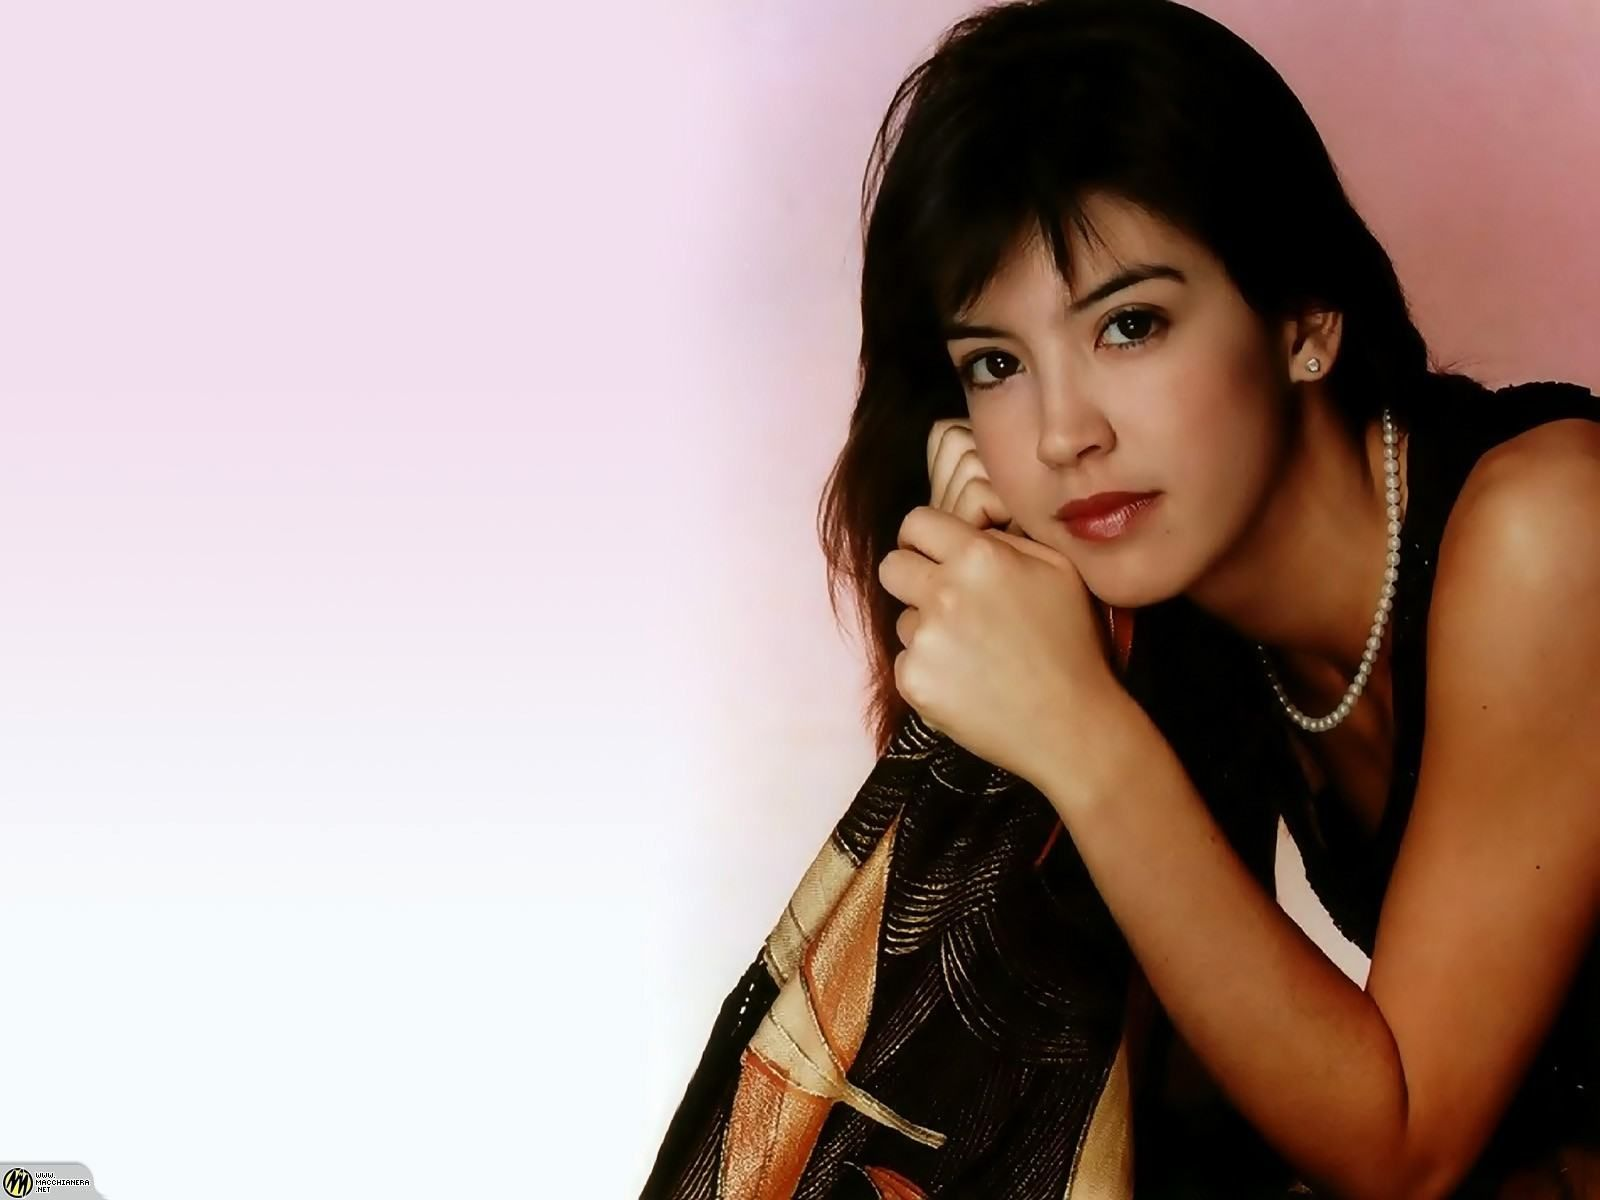 1600x1200 - Phoebe Cates Wallpapers 36